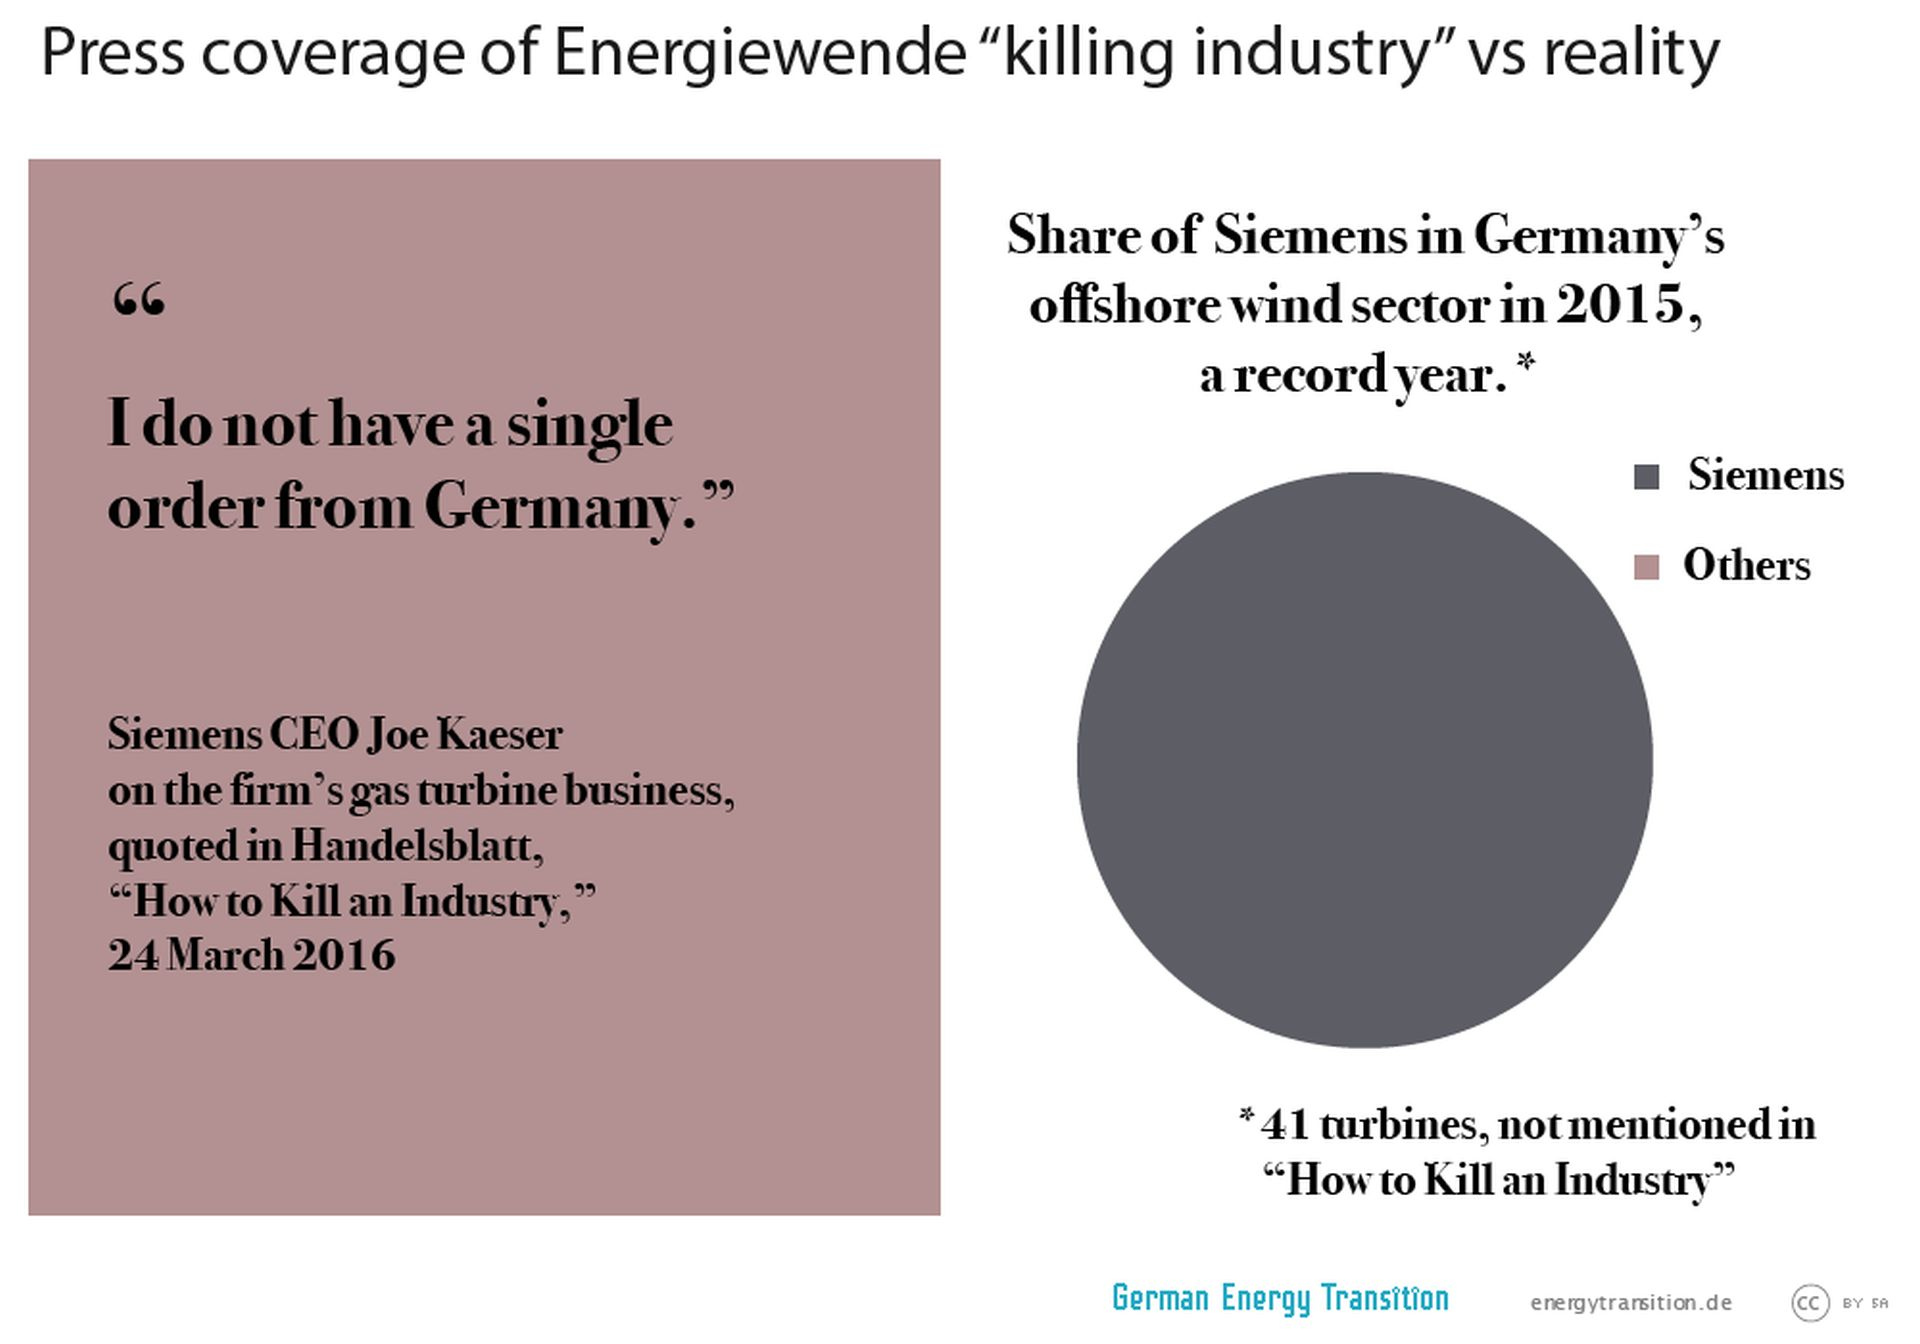 "On the left side there's the quote ""I do not have a single order from Germany."" by Siemens CEO Joe Kaeser. On the right side there's shown that Siemens is the only one having shares in Germany's offshore wind sector in 2015."